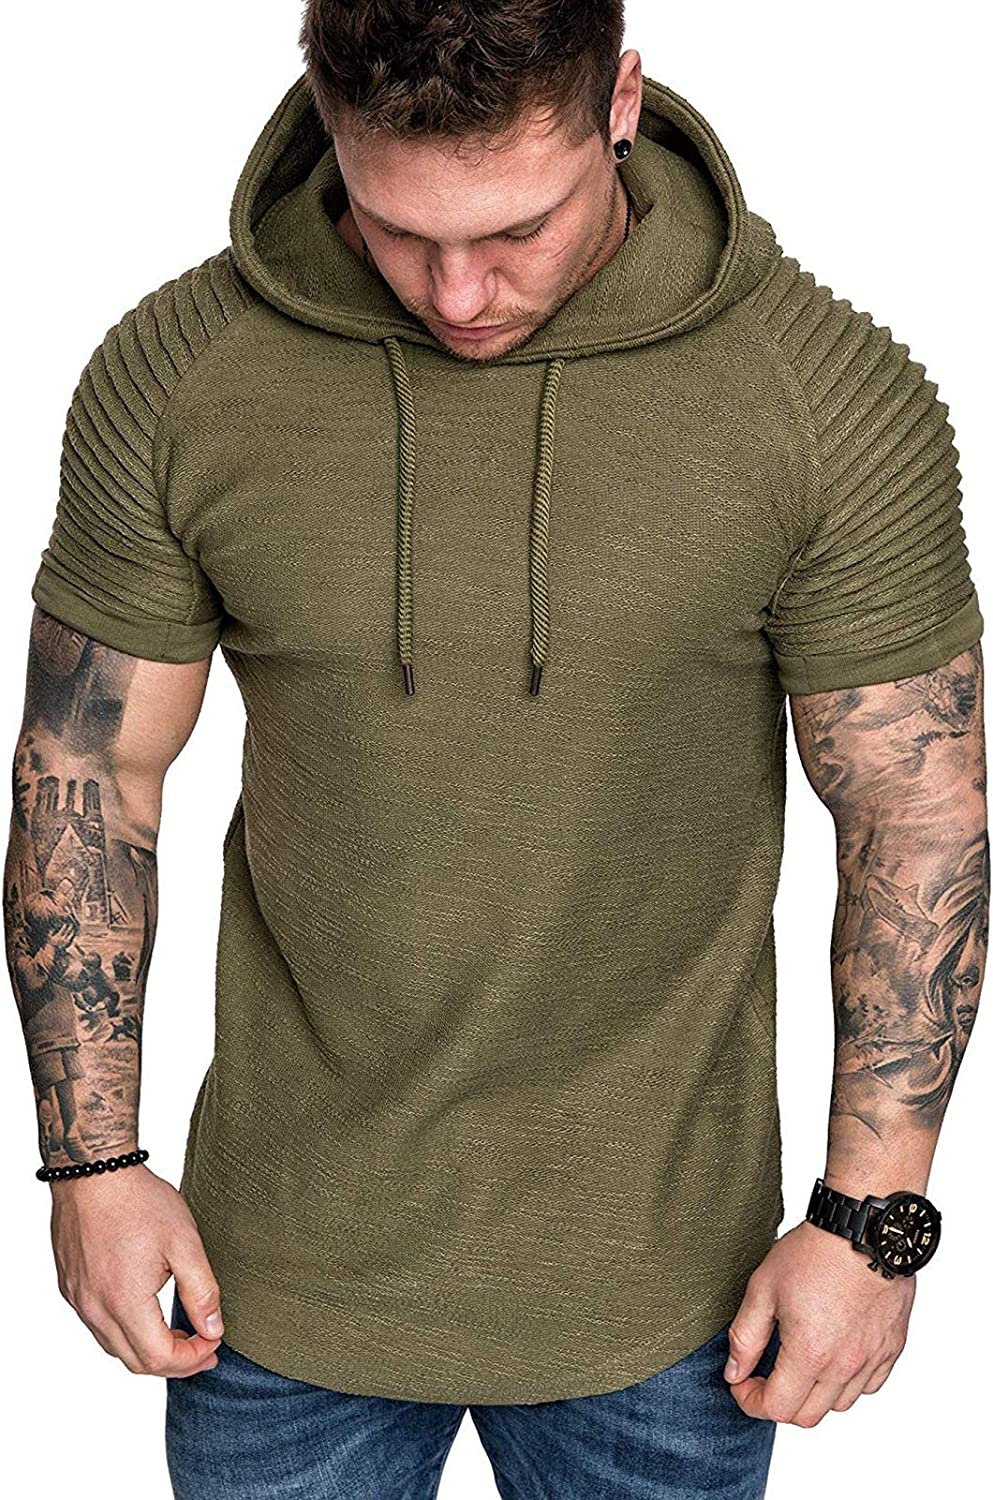 Men's Casual Hooded T-Shirts - Fashion Short Sleeve Solid Color Pullover Top Summer Blouse